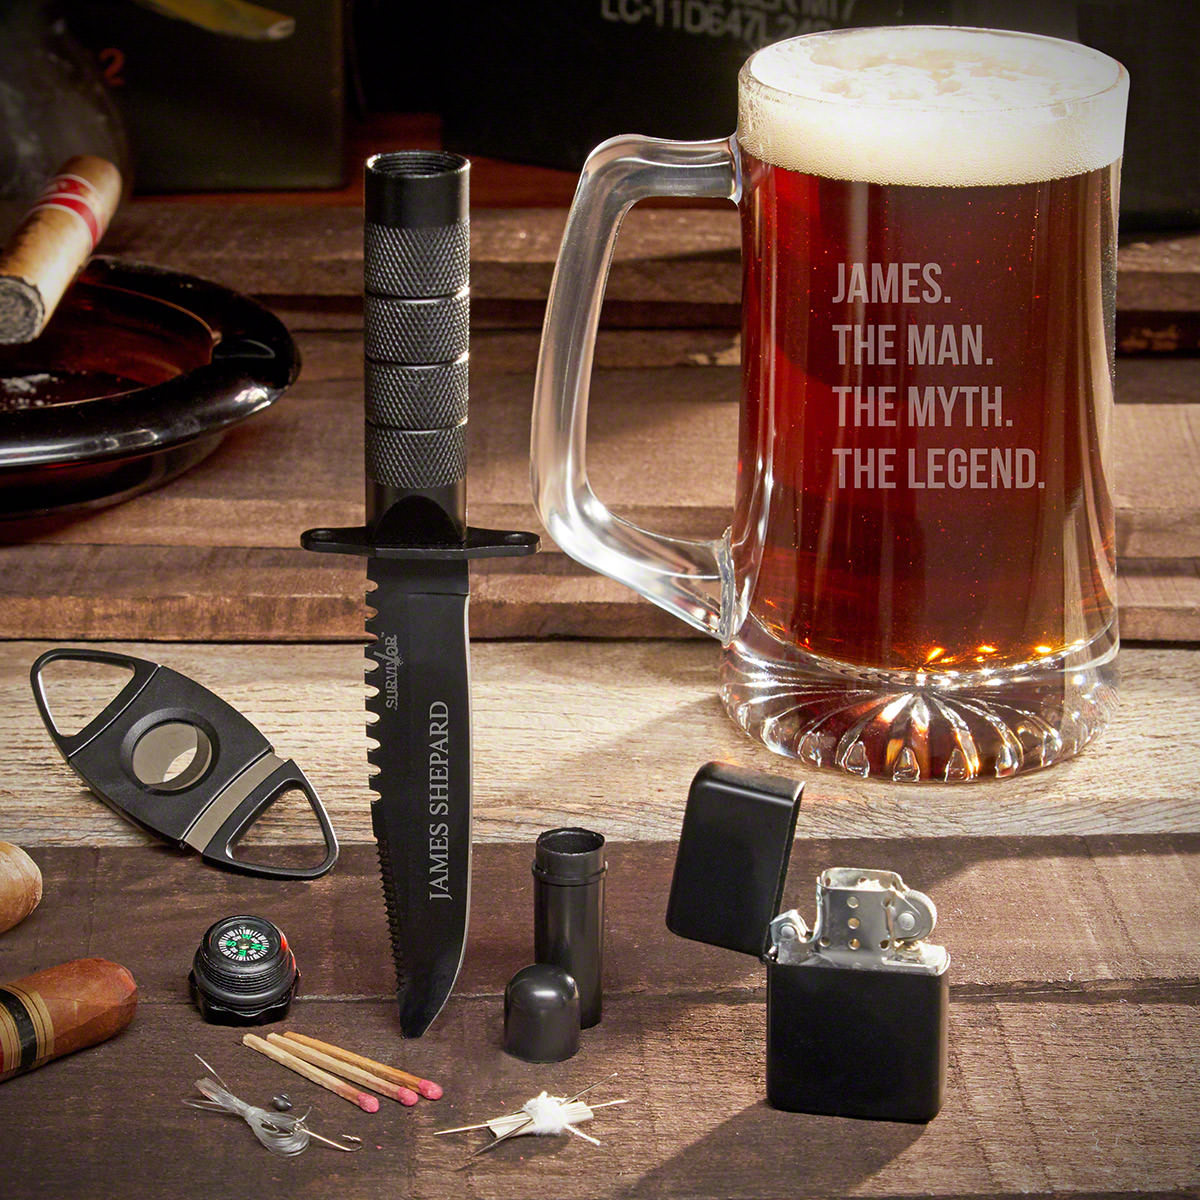 A legend amongst legends will have every tool needed for the job. Our custom beer mug gift set looks to make legends out of any interested man. The tactical knife comes with a compass, sewing kit, matches, fishing line, hook, and split shot weight. A flip #mug